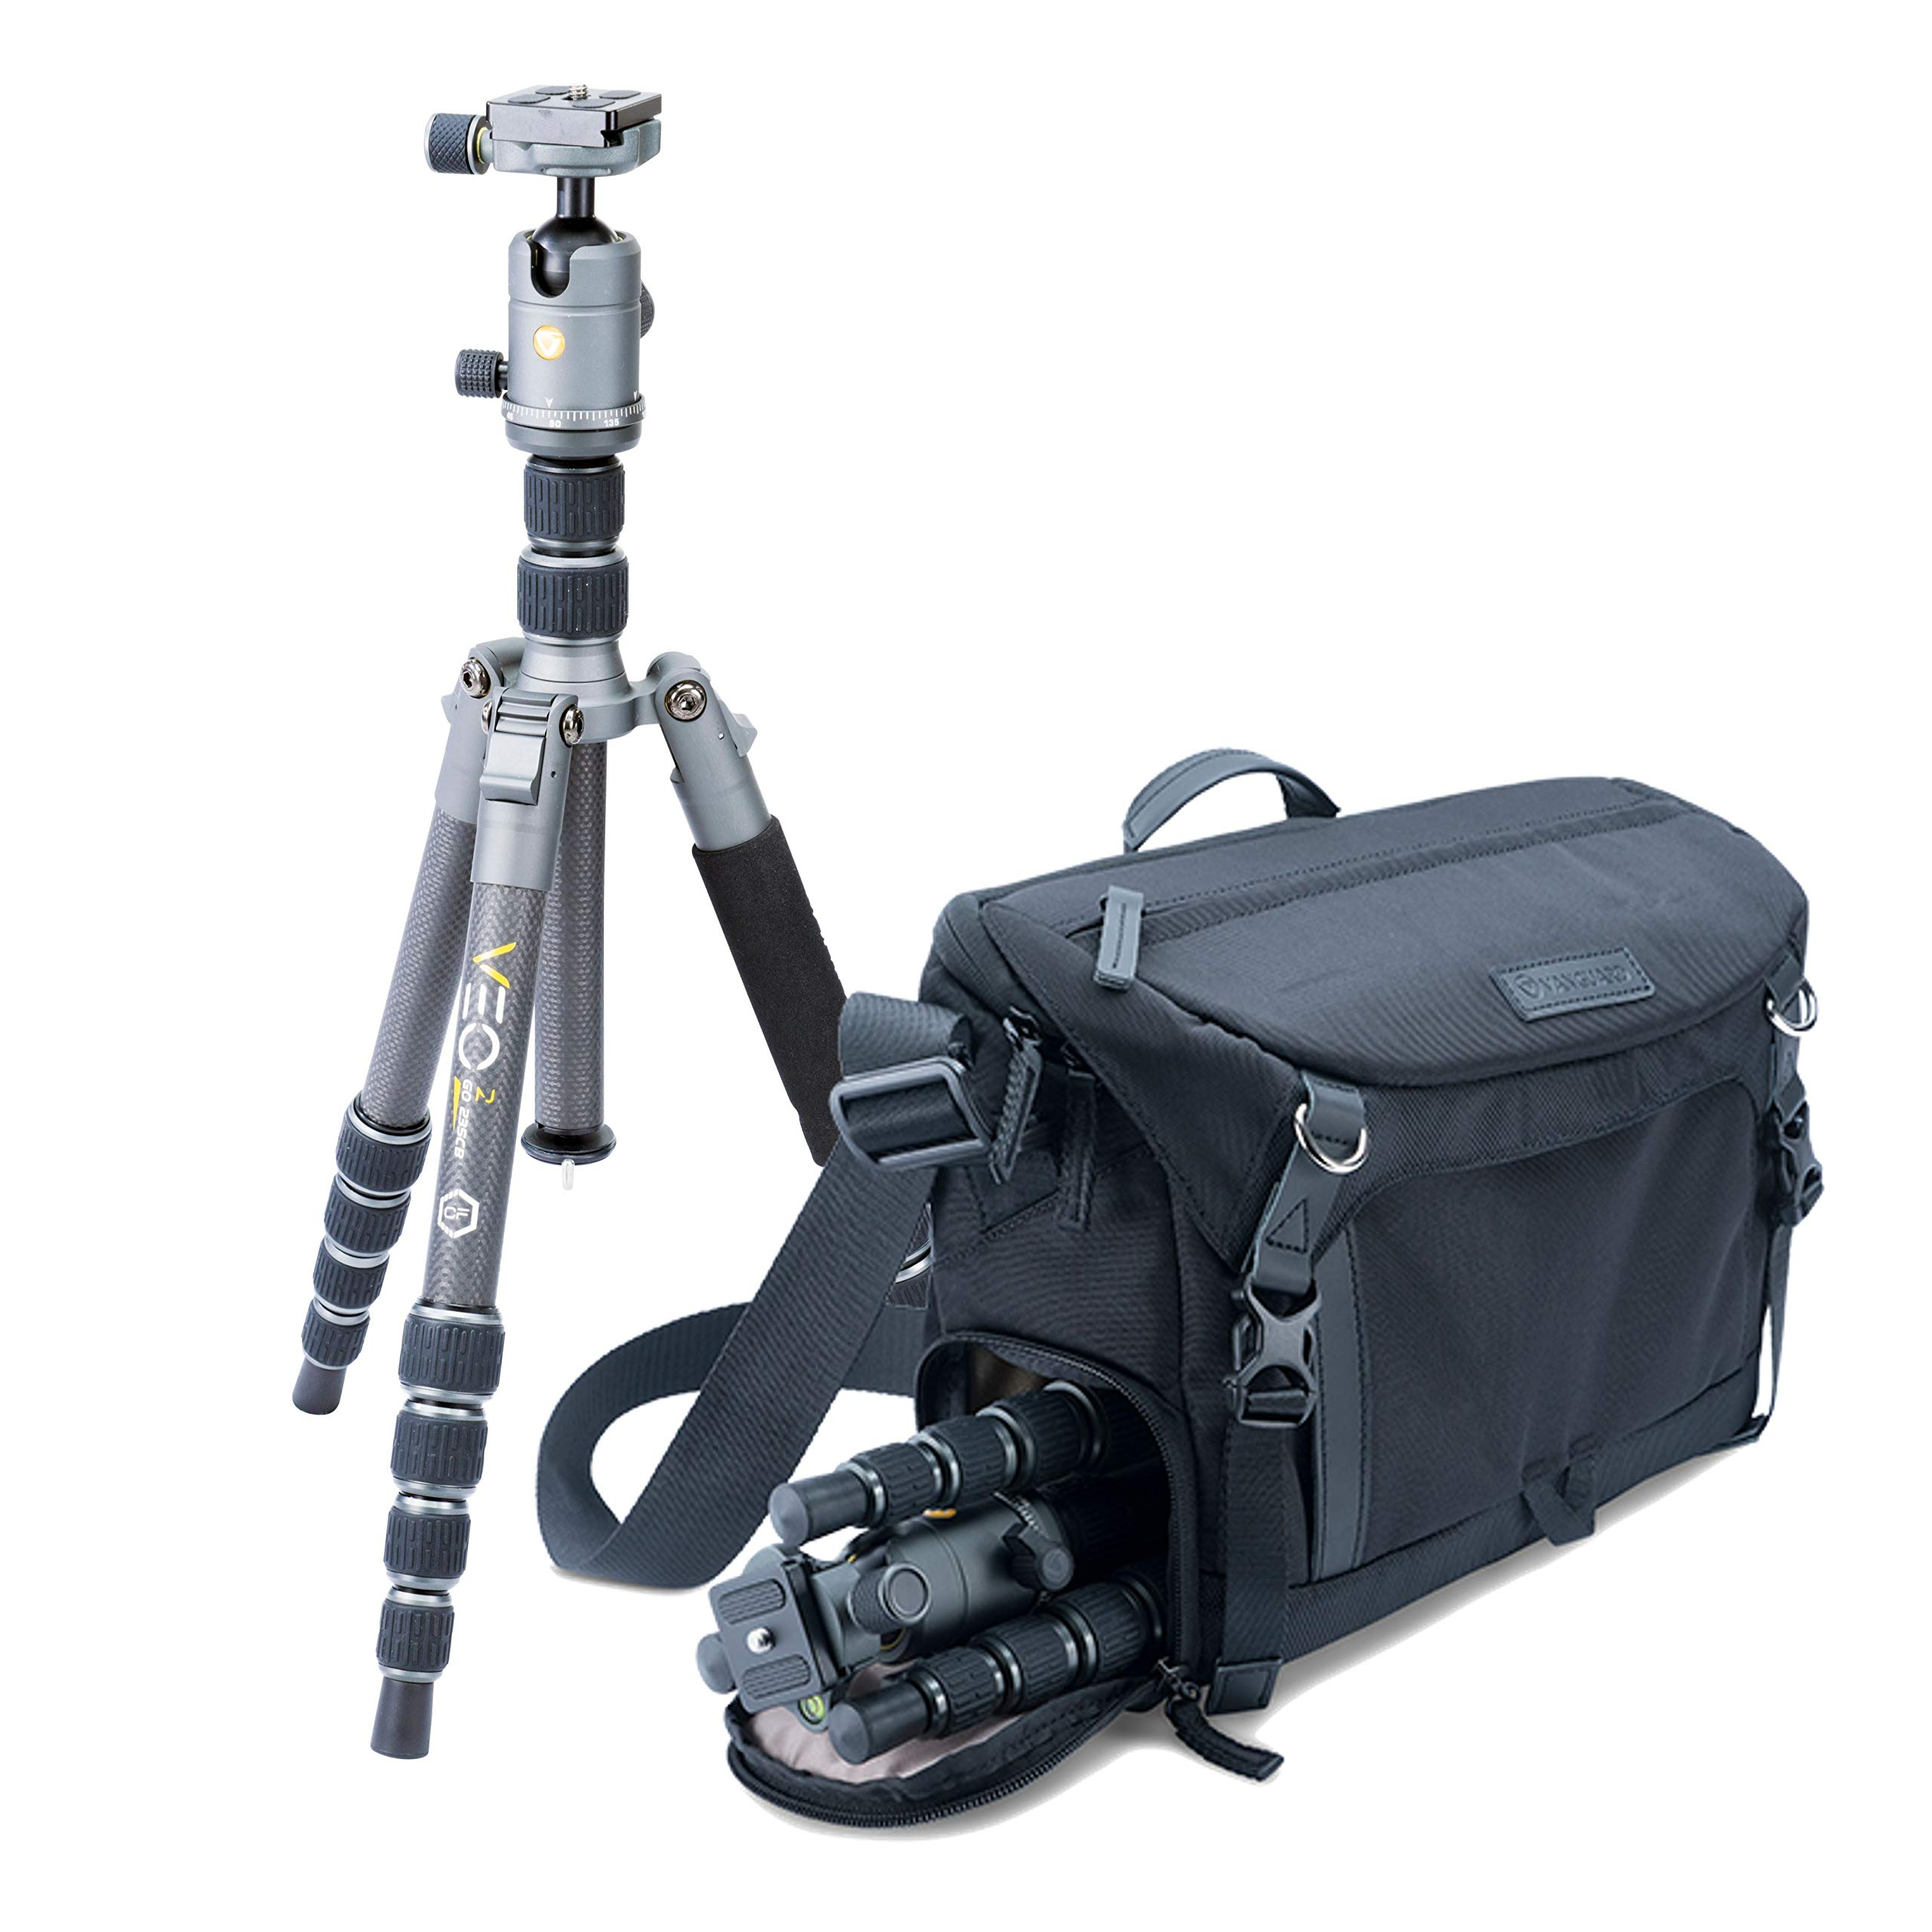 Veo 2GO 235CB Tripod Kit and Veo GO 34M BK Bag by Vanguard